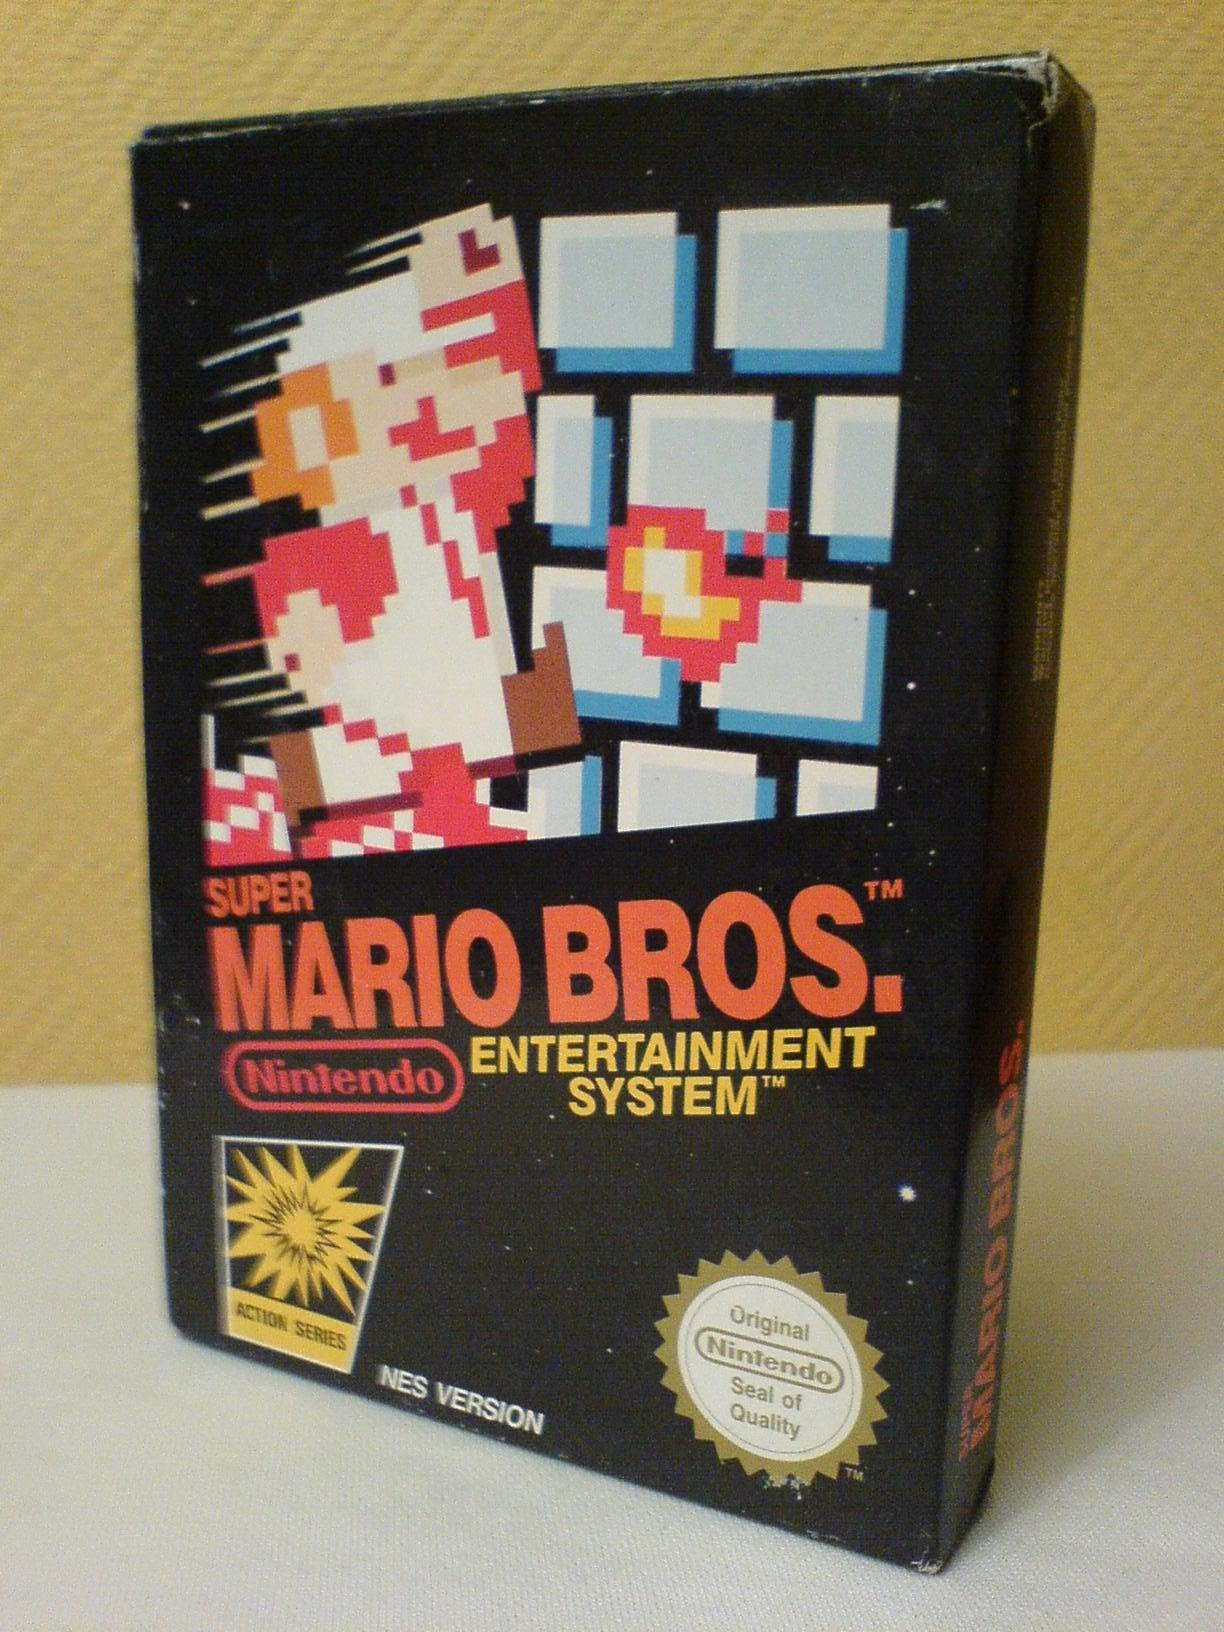 Game boy color super mario bros deluxe - Date Posted Aug 15 2014 33